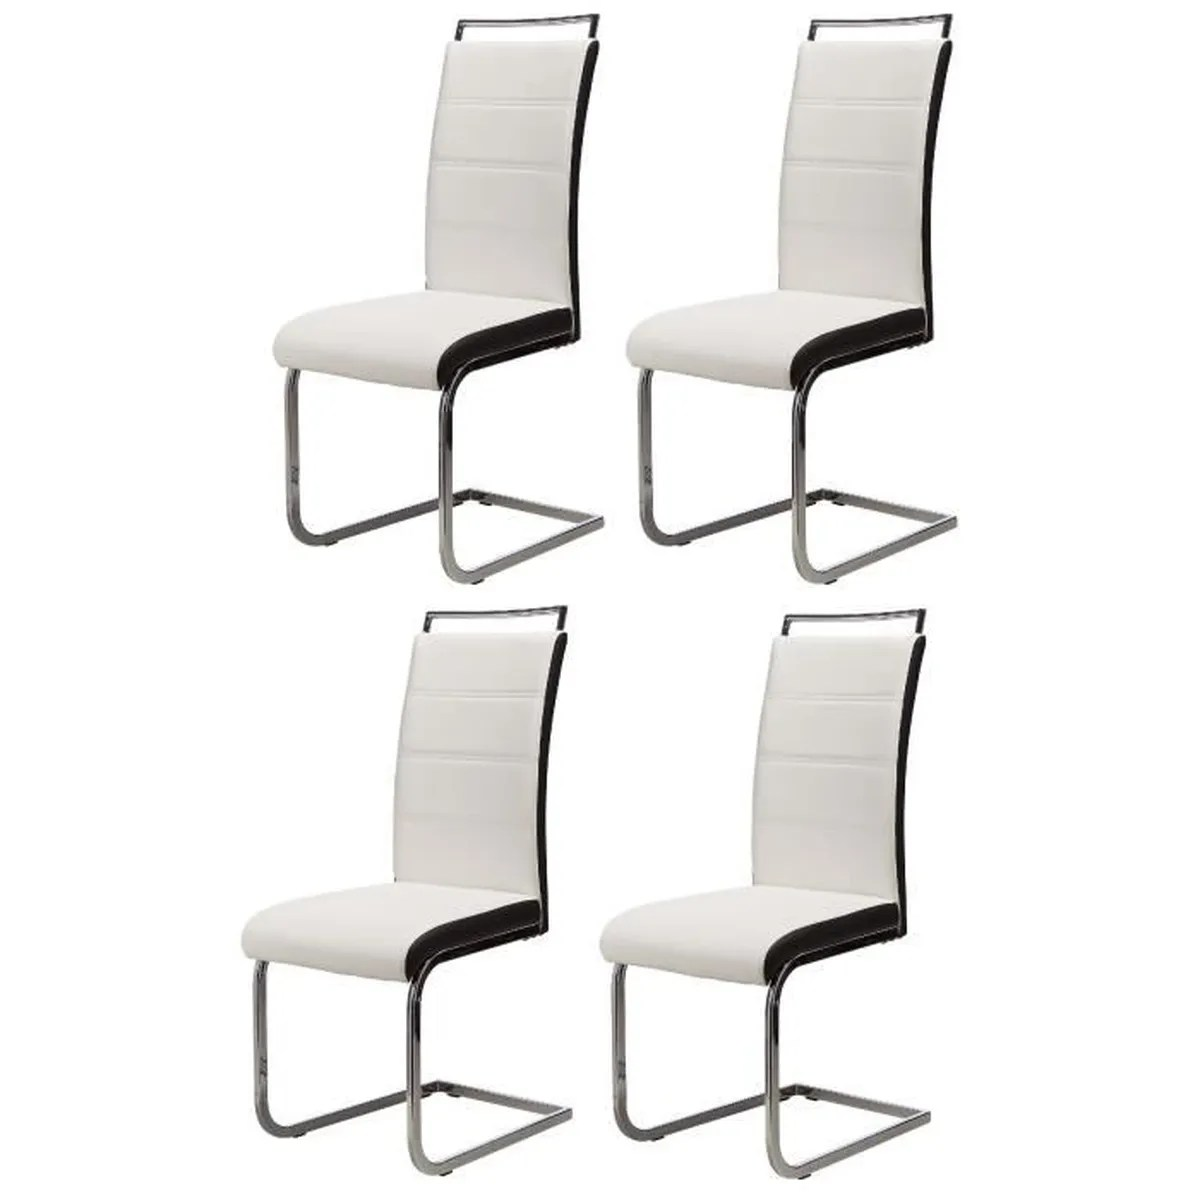 Chaise De Salon Blanche Dylan Lot De 4 Chaises Salon Blanc Noir Achat Vente Chaise